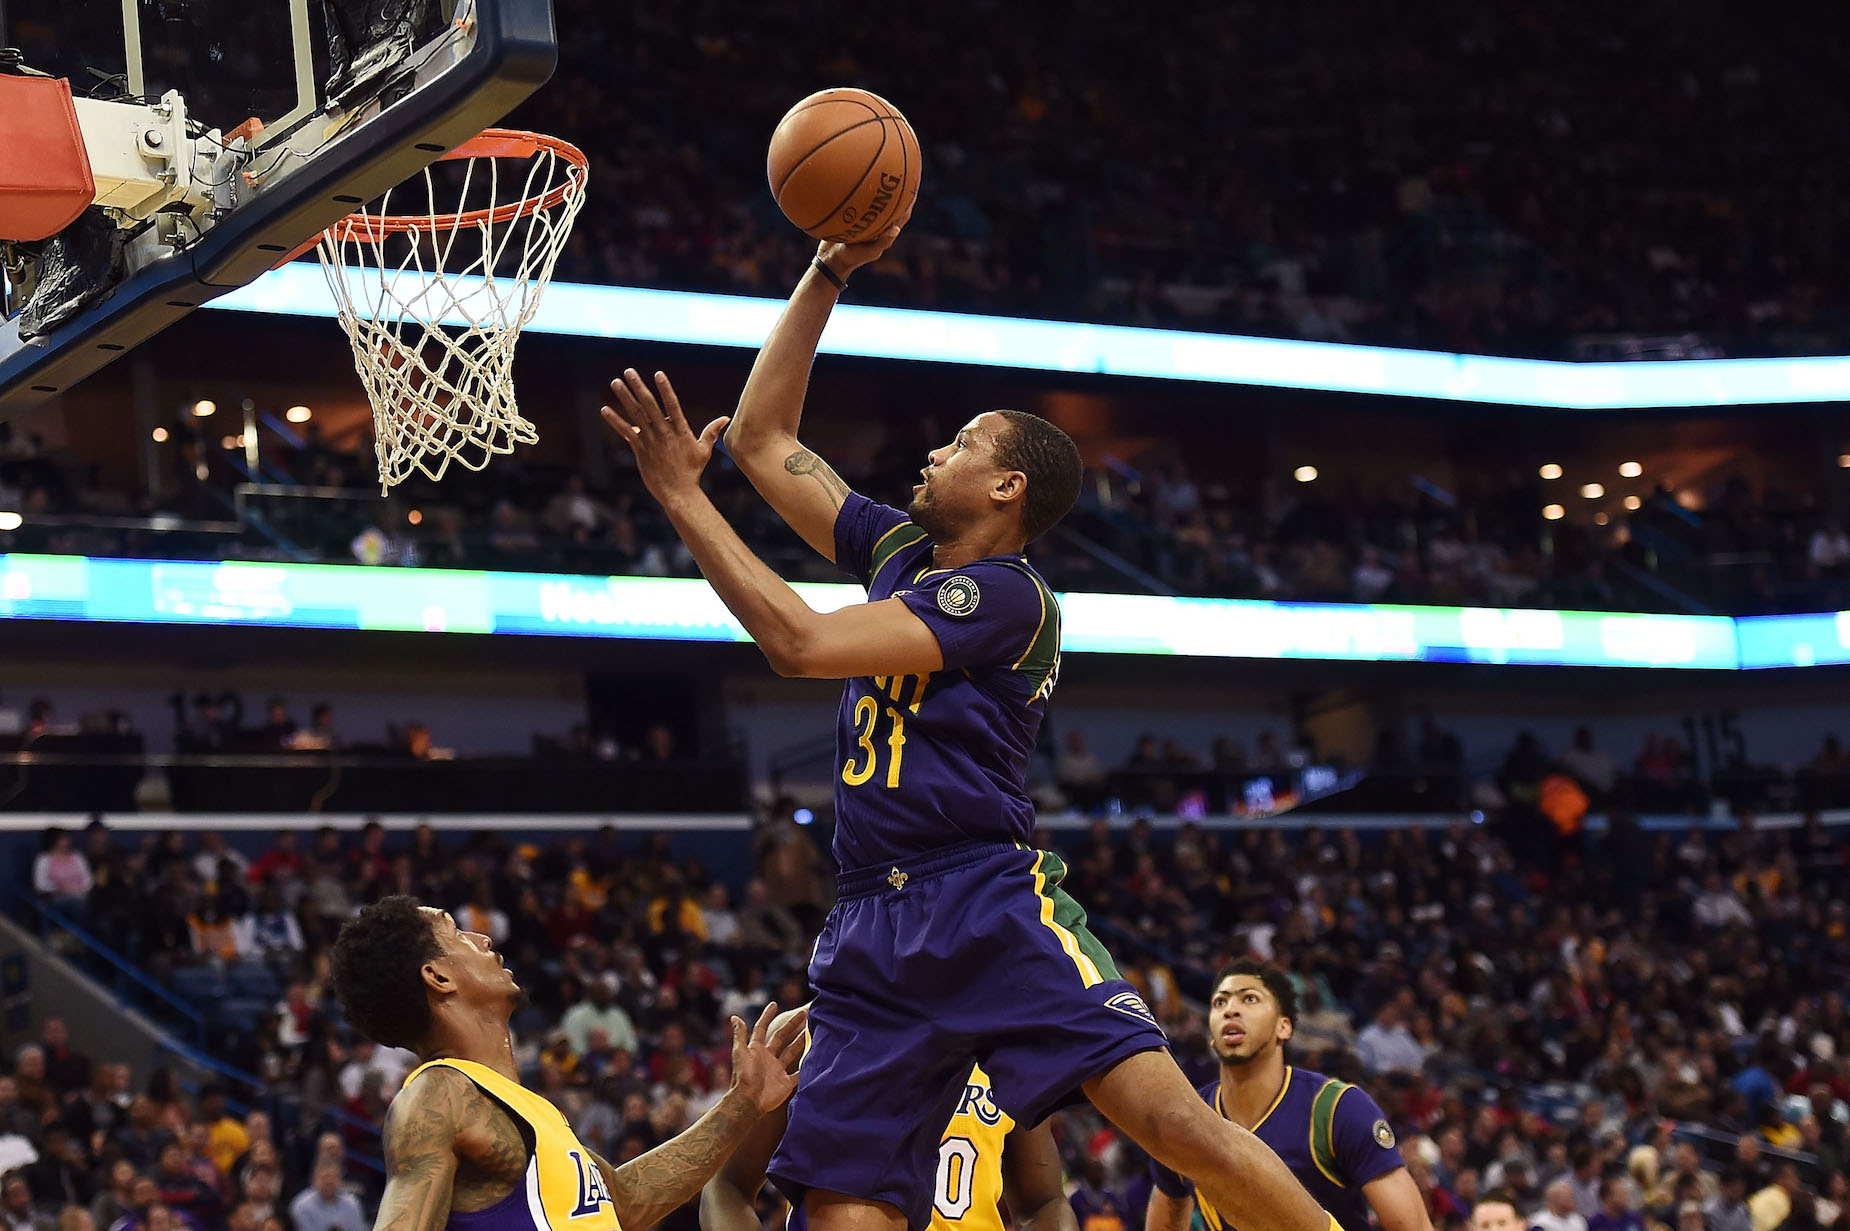 New Orleans Pelicans guard Bryce Dejean-Jones tragically died after his first season in the NBA.